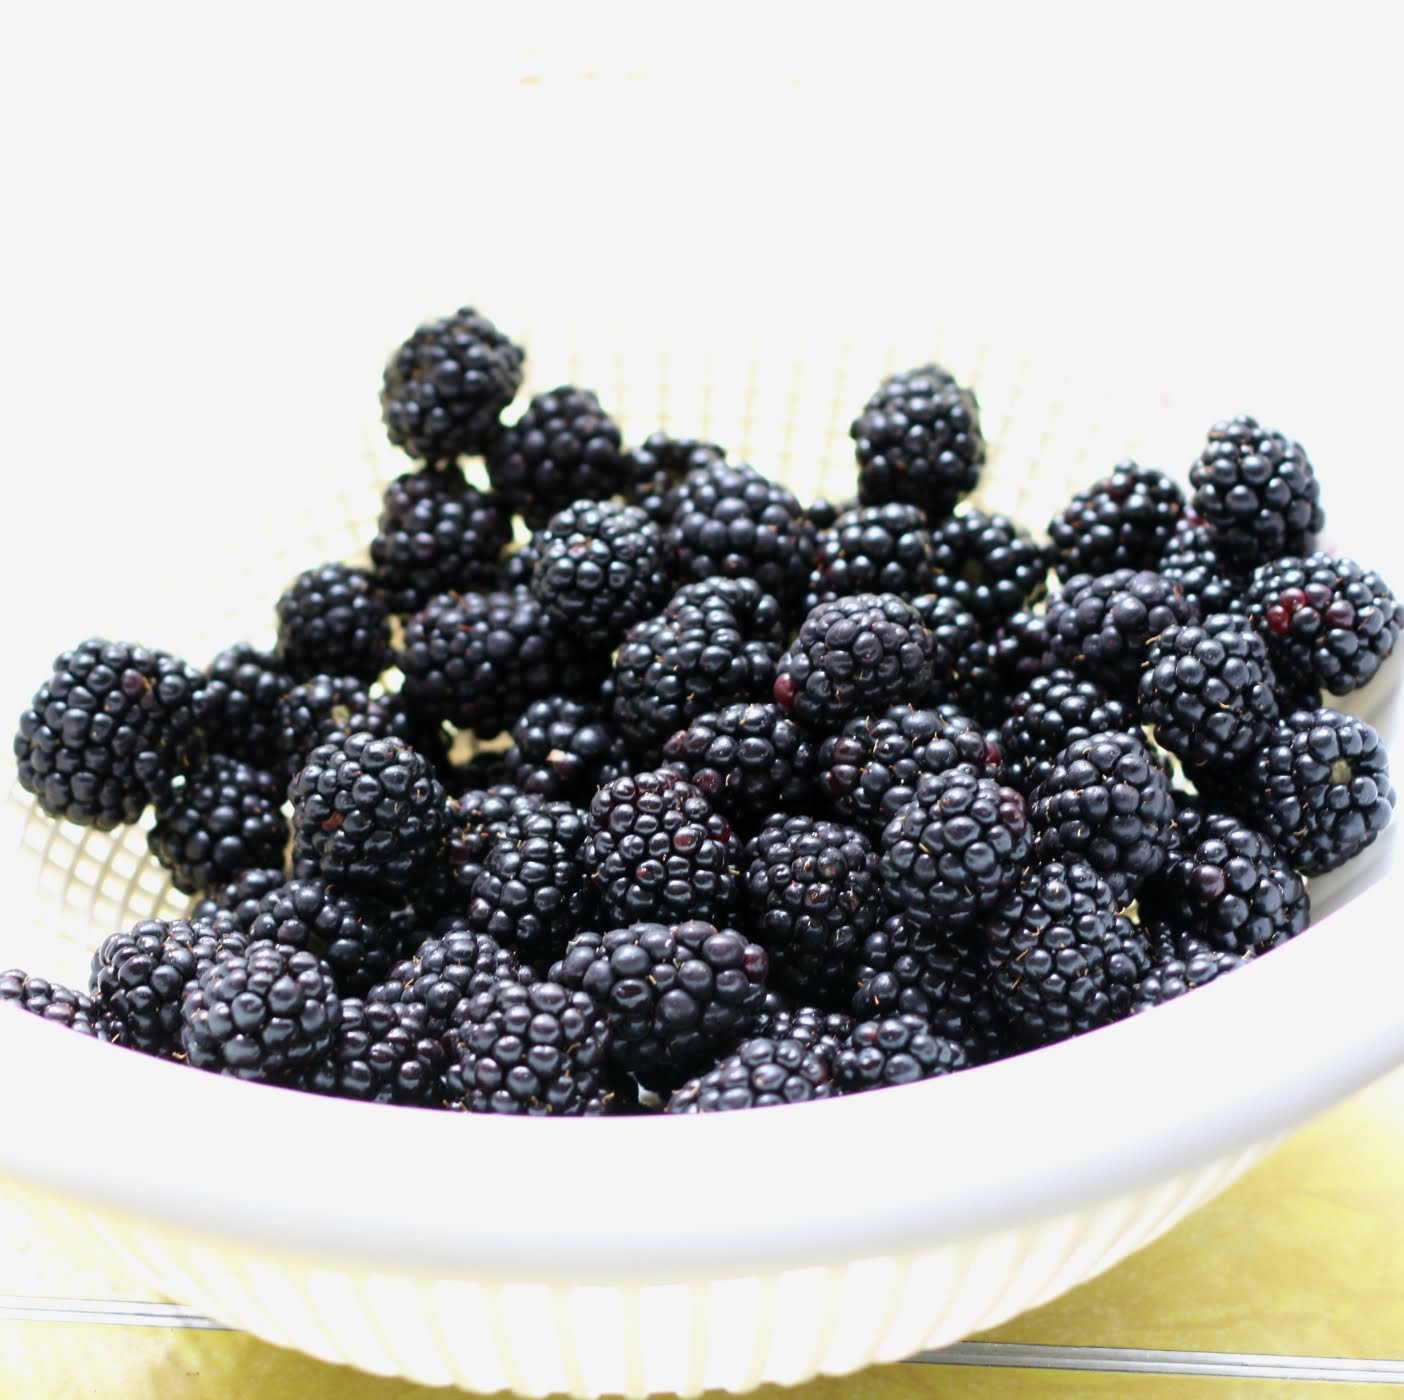 ShowFood Chef: Blackberry, Blueberry, Port Wine Jam - Sing it!